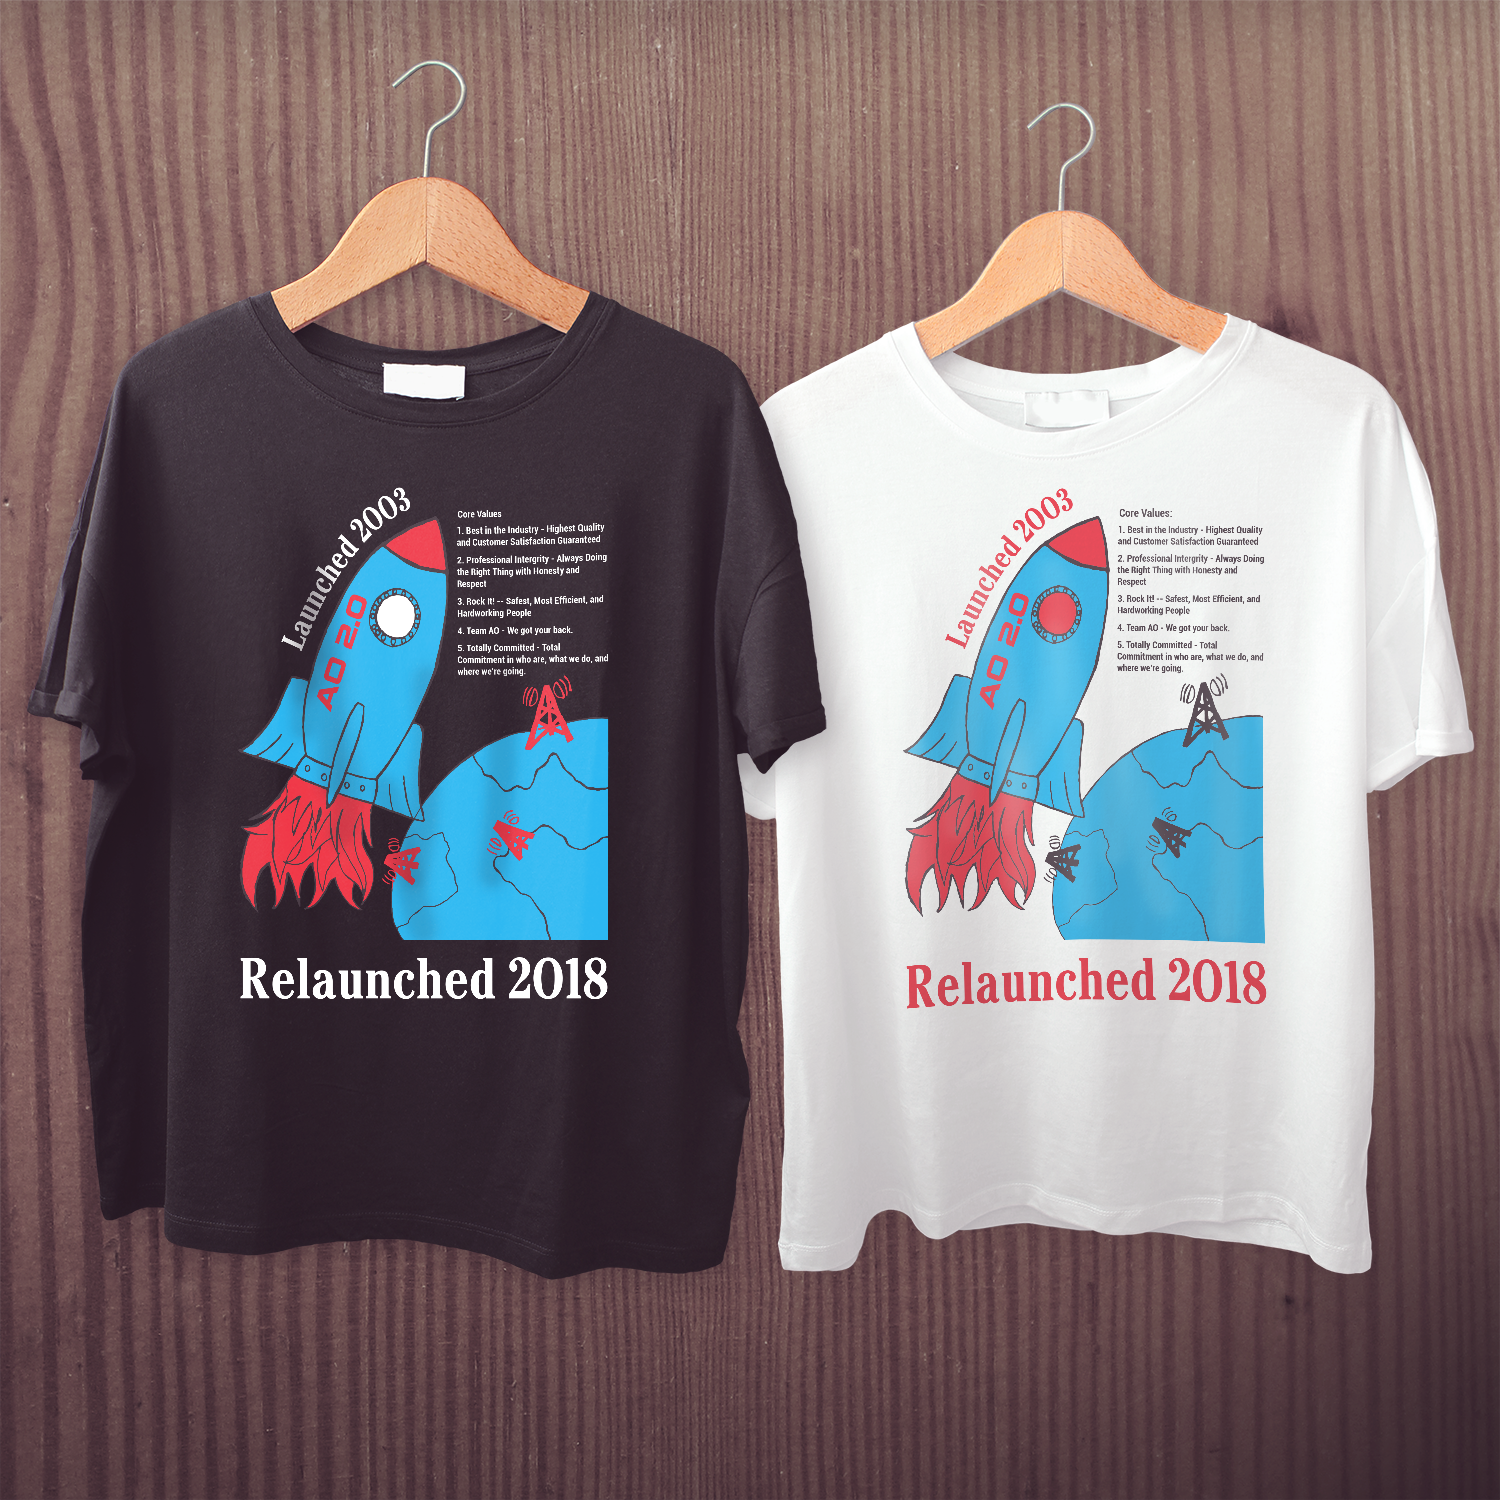 20cedd88 T-shirt Design by nh.bang2015 for this project | Design #20985922